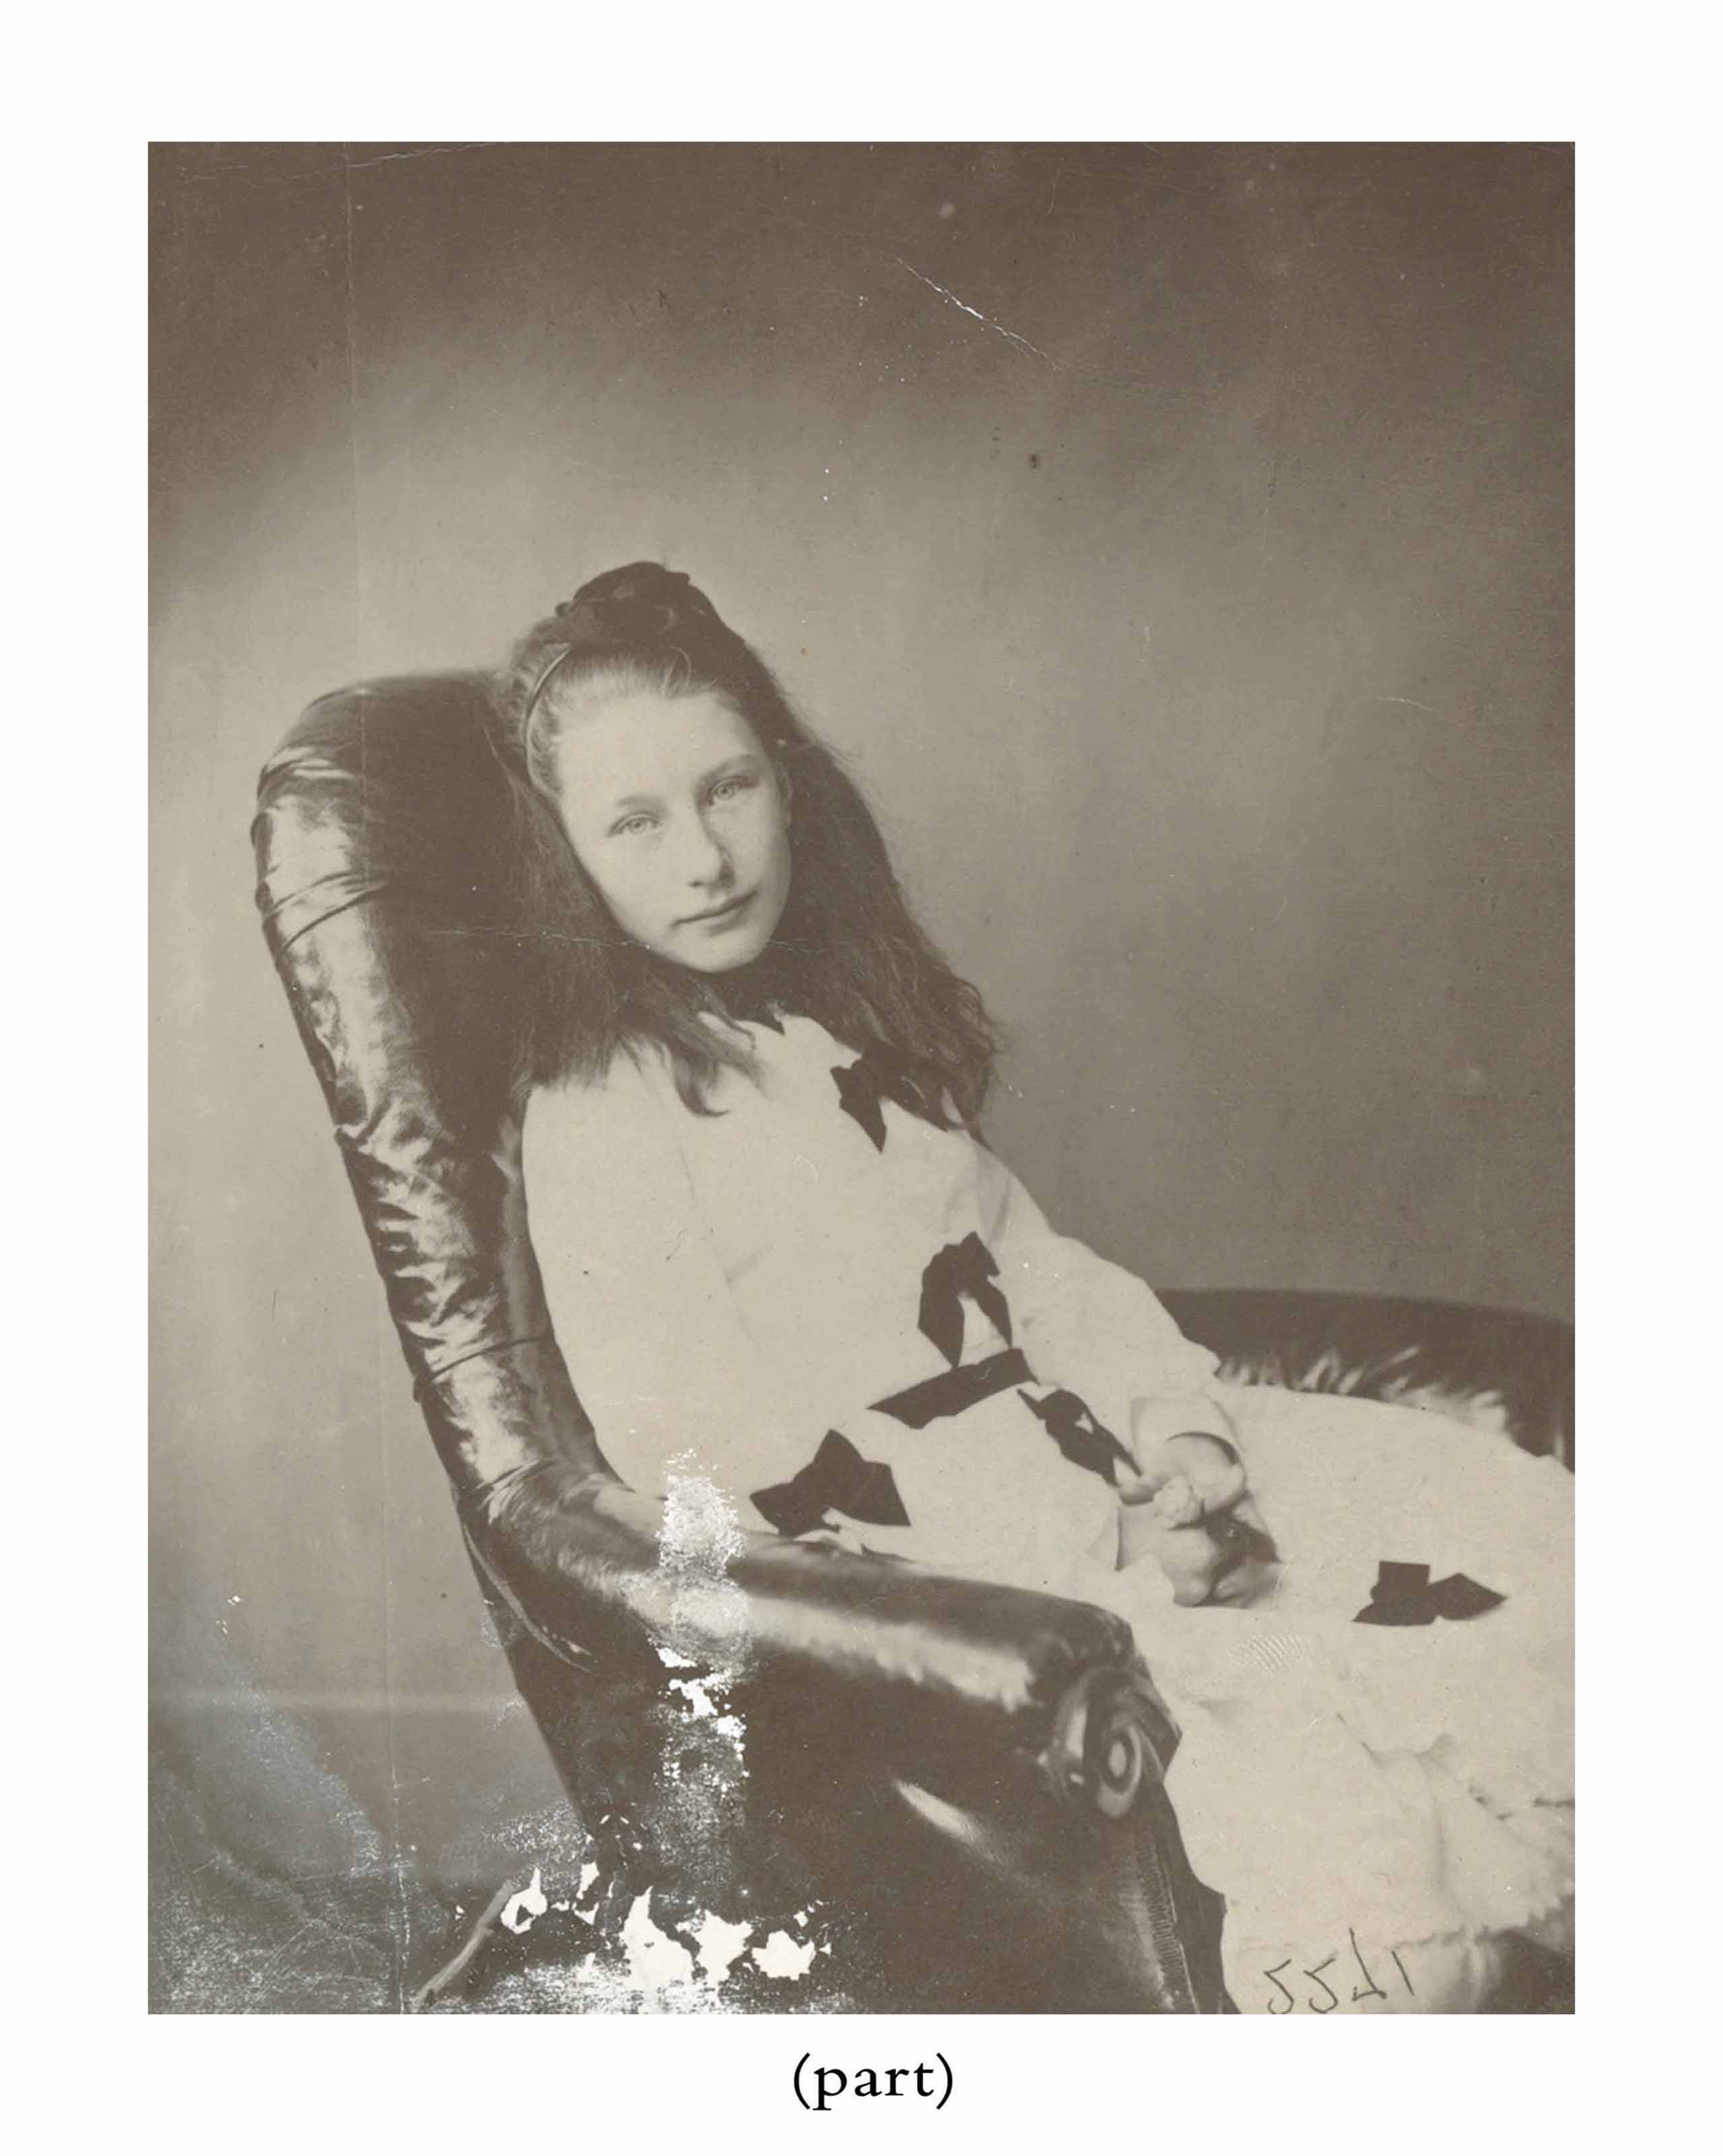 DODGSON, Charles Lutwidge ('Lewis Carroll', 1832-1898). Three photographs, of Minnie, Ella, and Emmie Drury, c. 1874, albumen prints, 143 x 100mm (some blanching to the bottom of the images of Minnie and Emmie), framed;